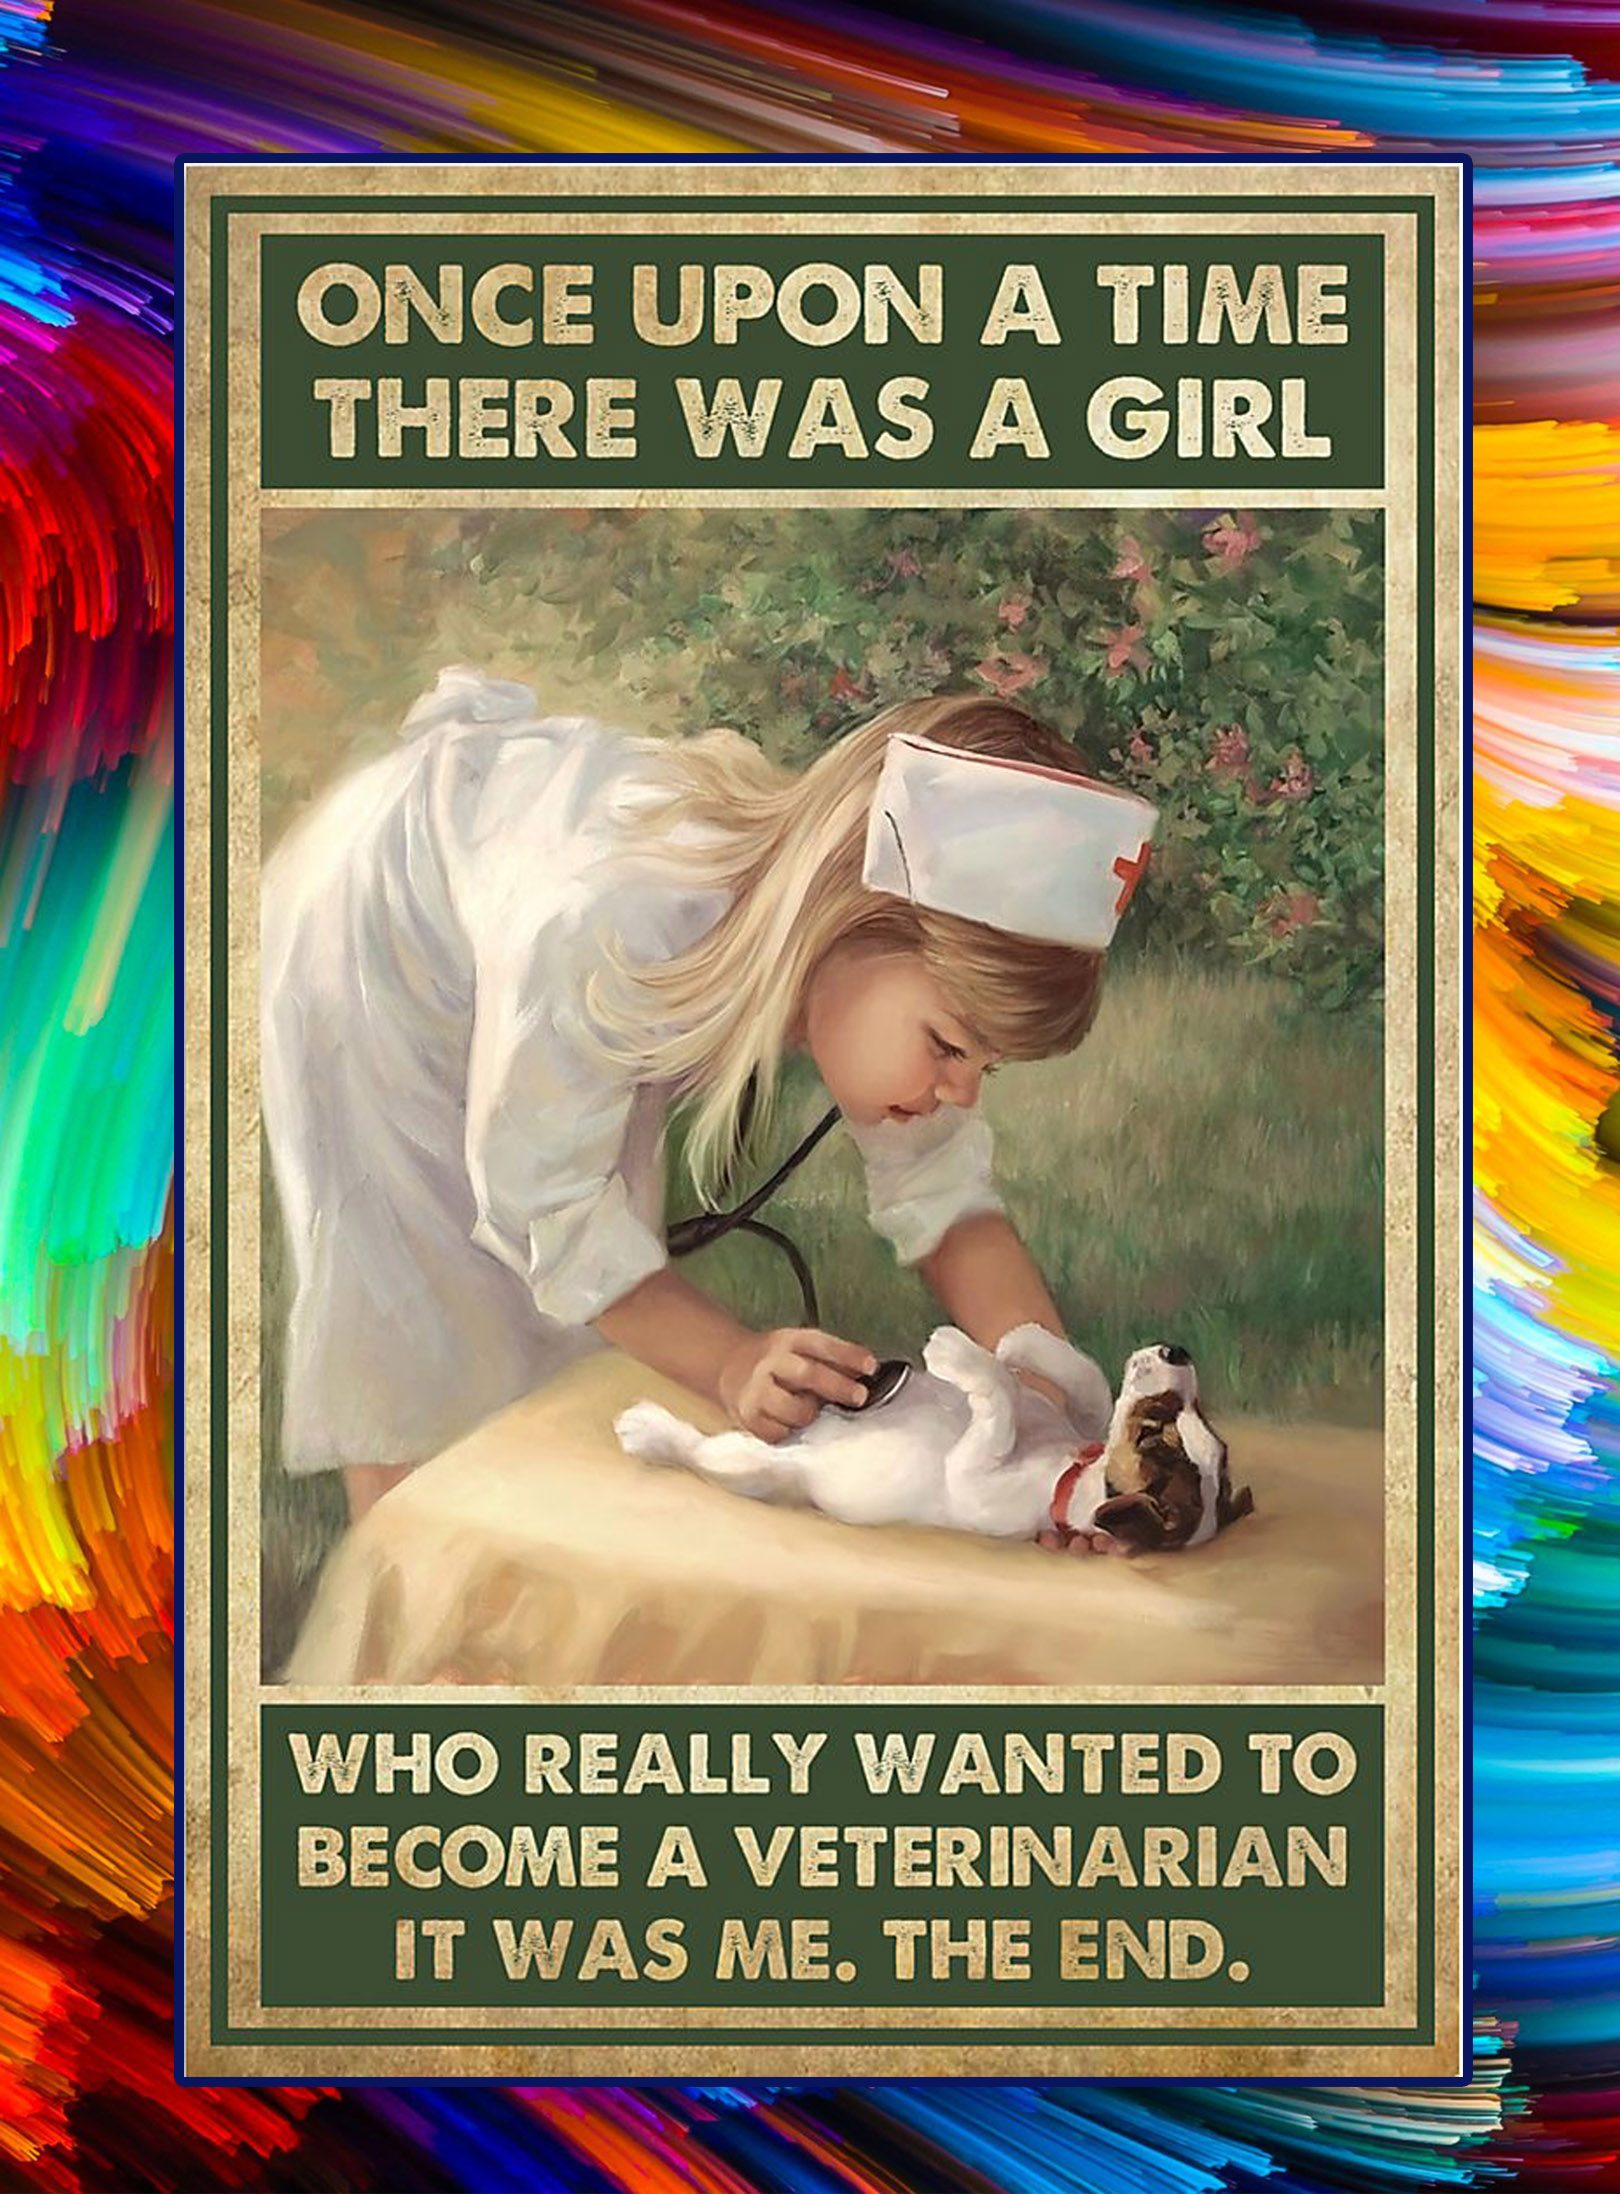 There was a girl who really wanted to become a veterinarian poster - A3